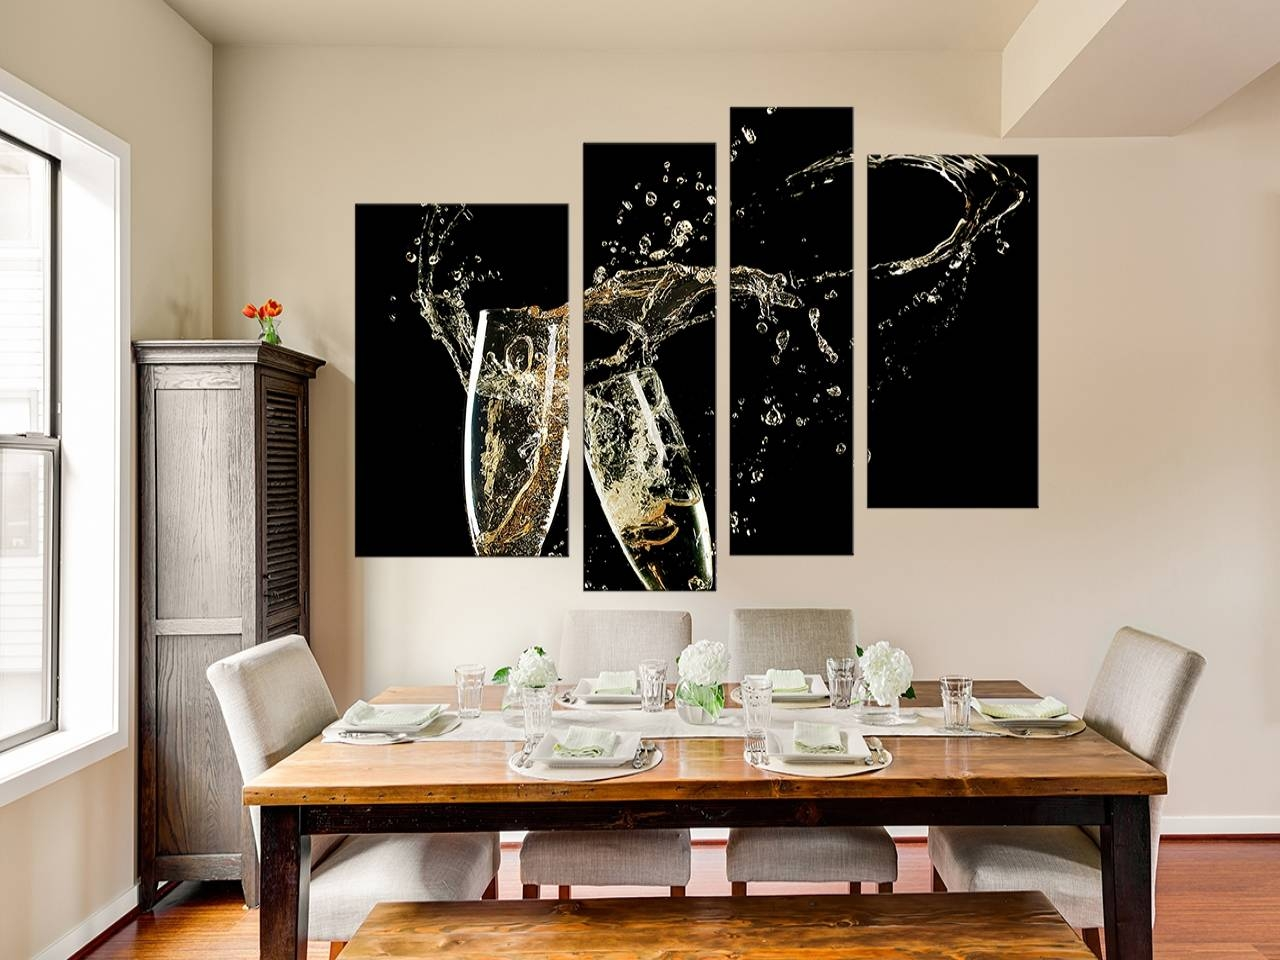 4 Piece Canvas Wall Art Black Large Canvas Champagne Multi Panel Inside  Current Multiple Piece Canvas